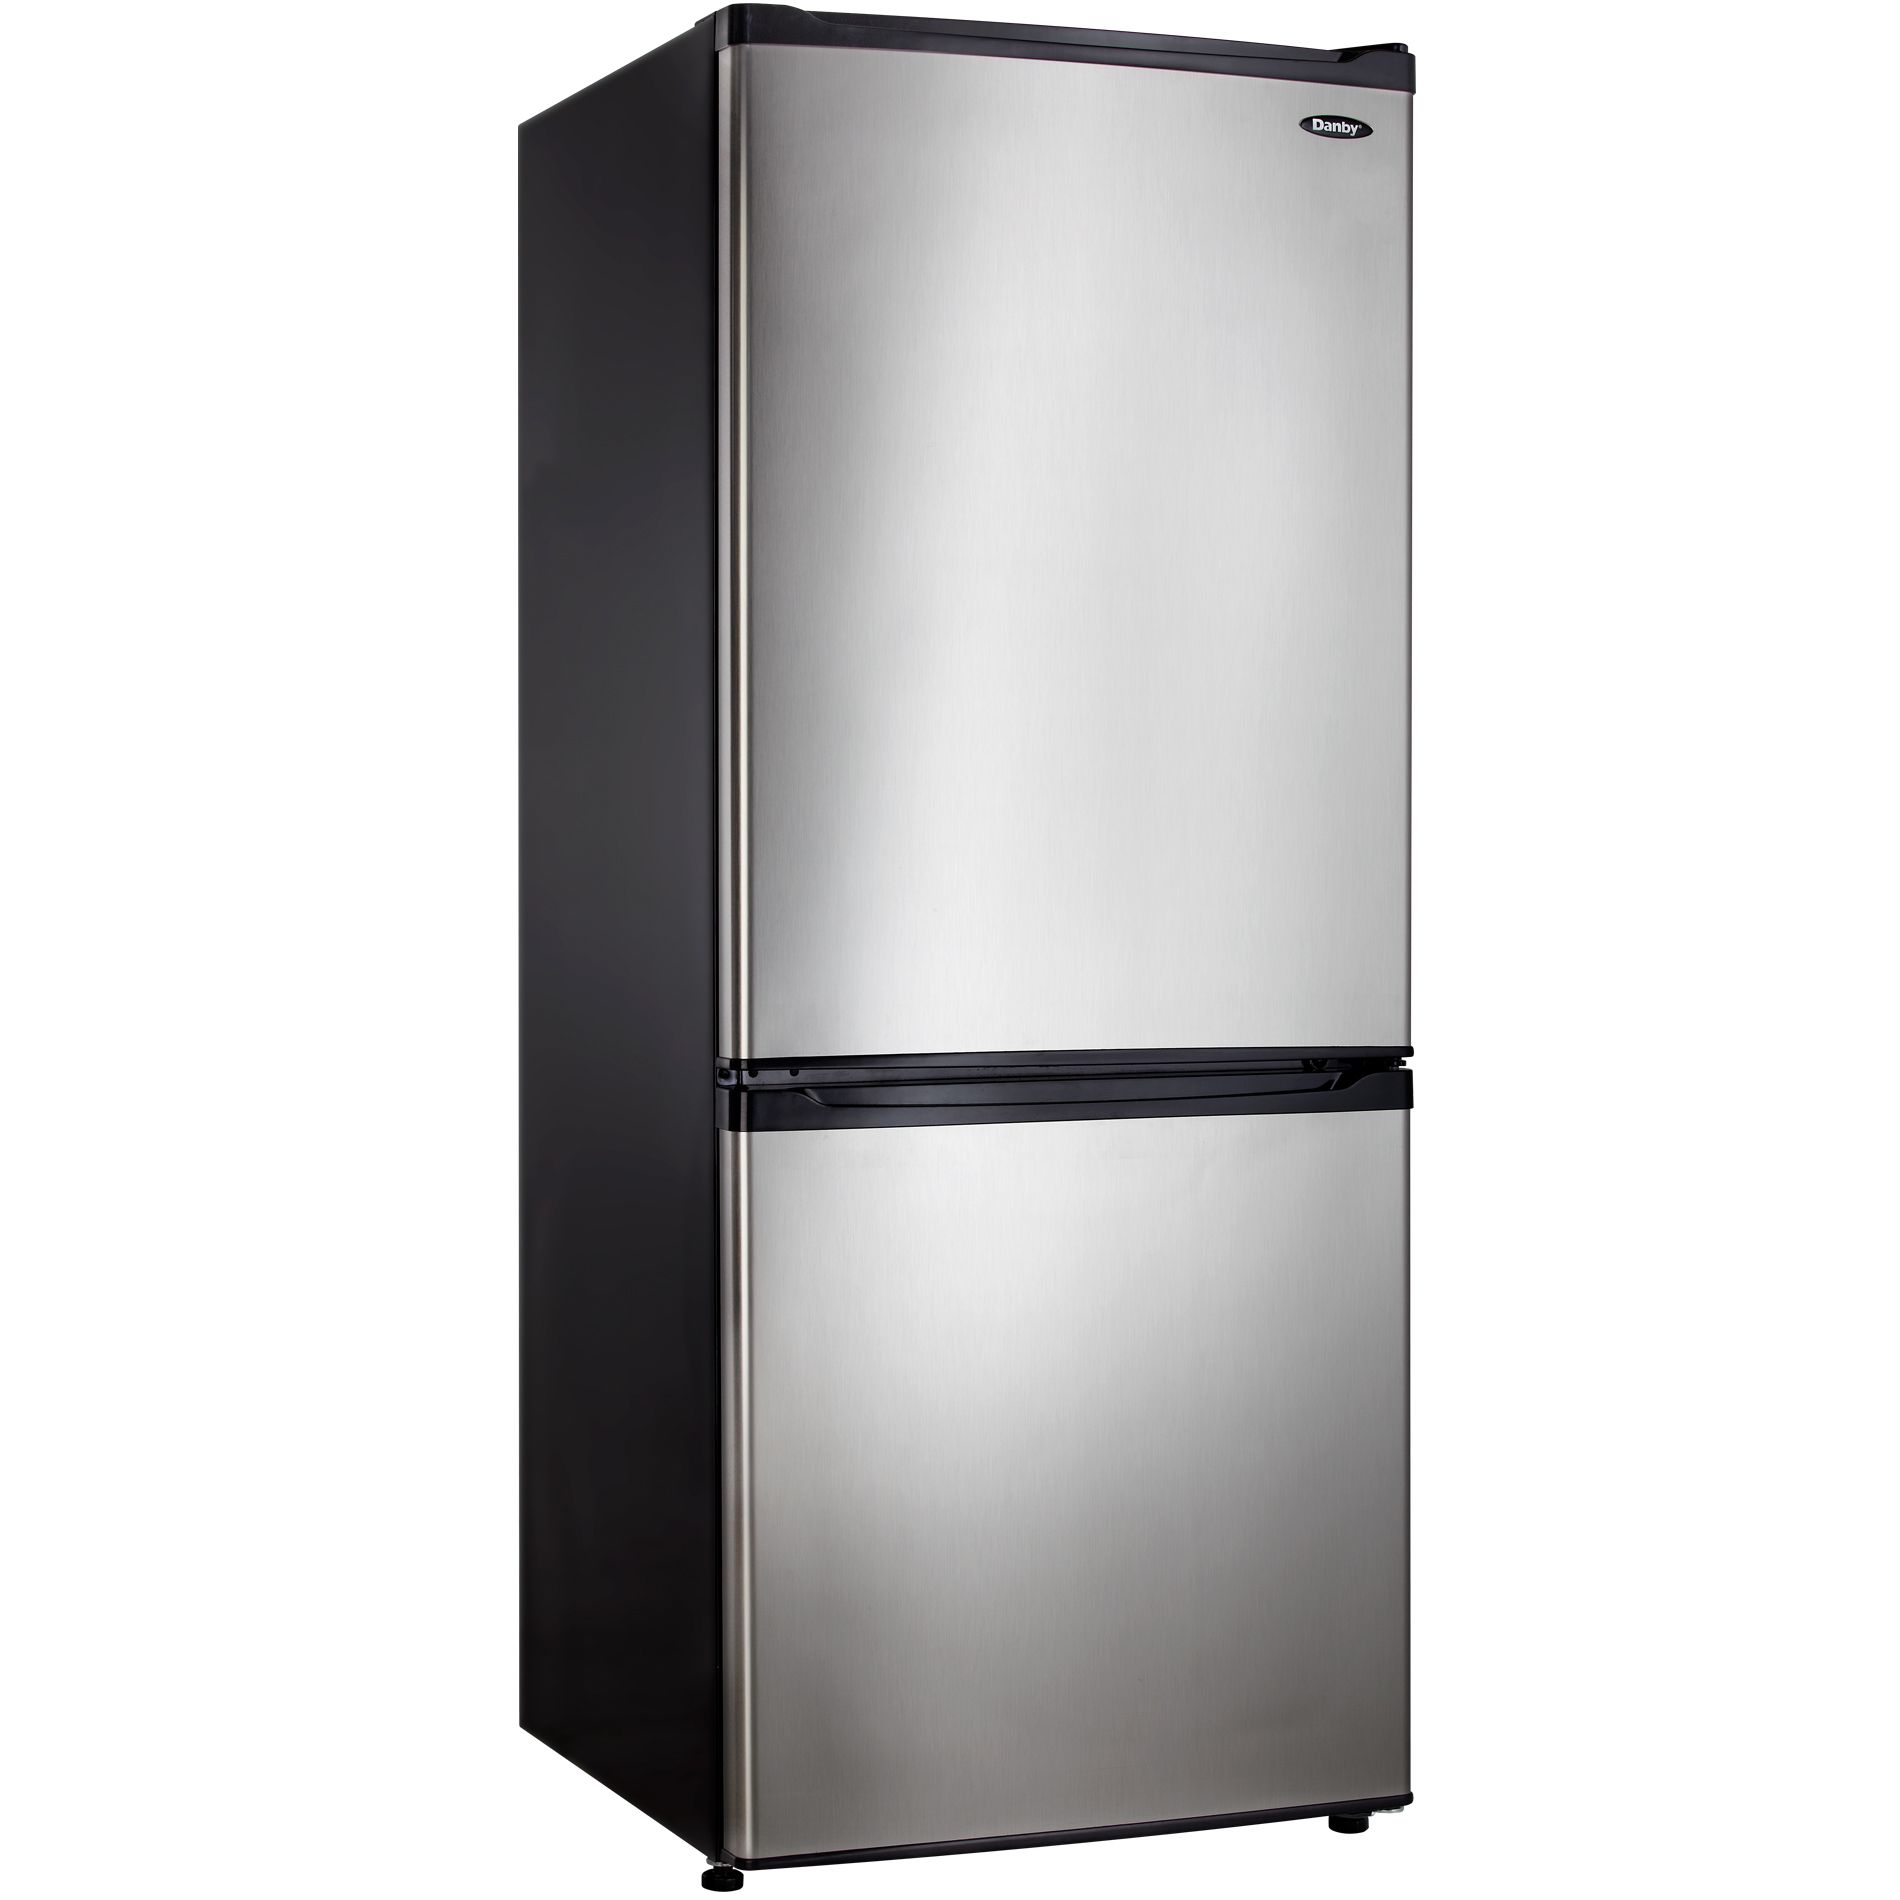 Danby DFF261BSLDB 92 cu ft Compact Refrigerator  Stainless Steel